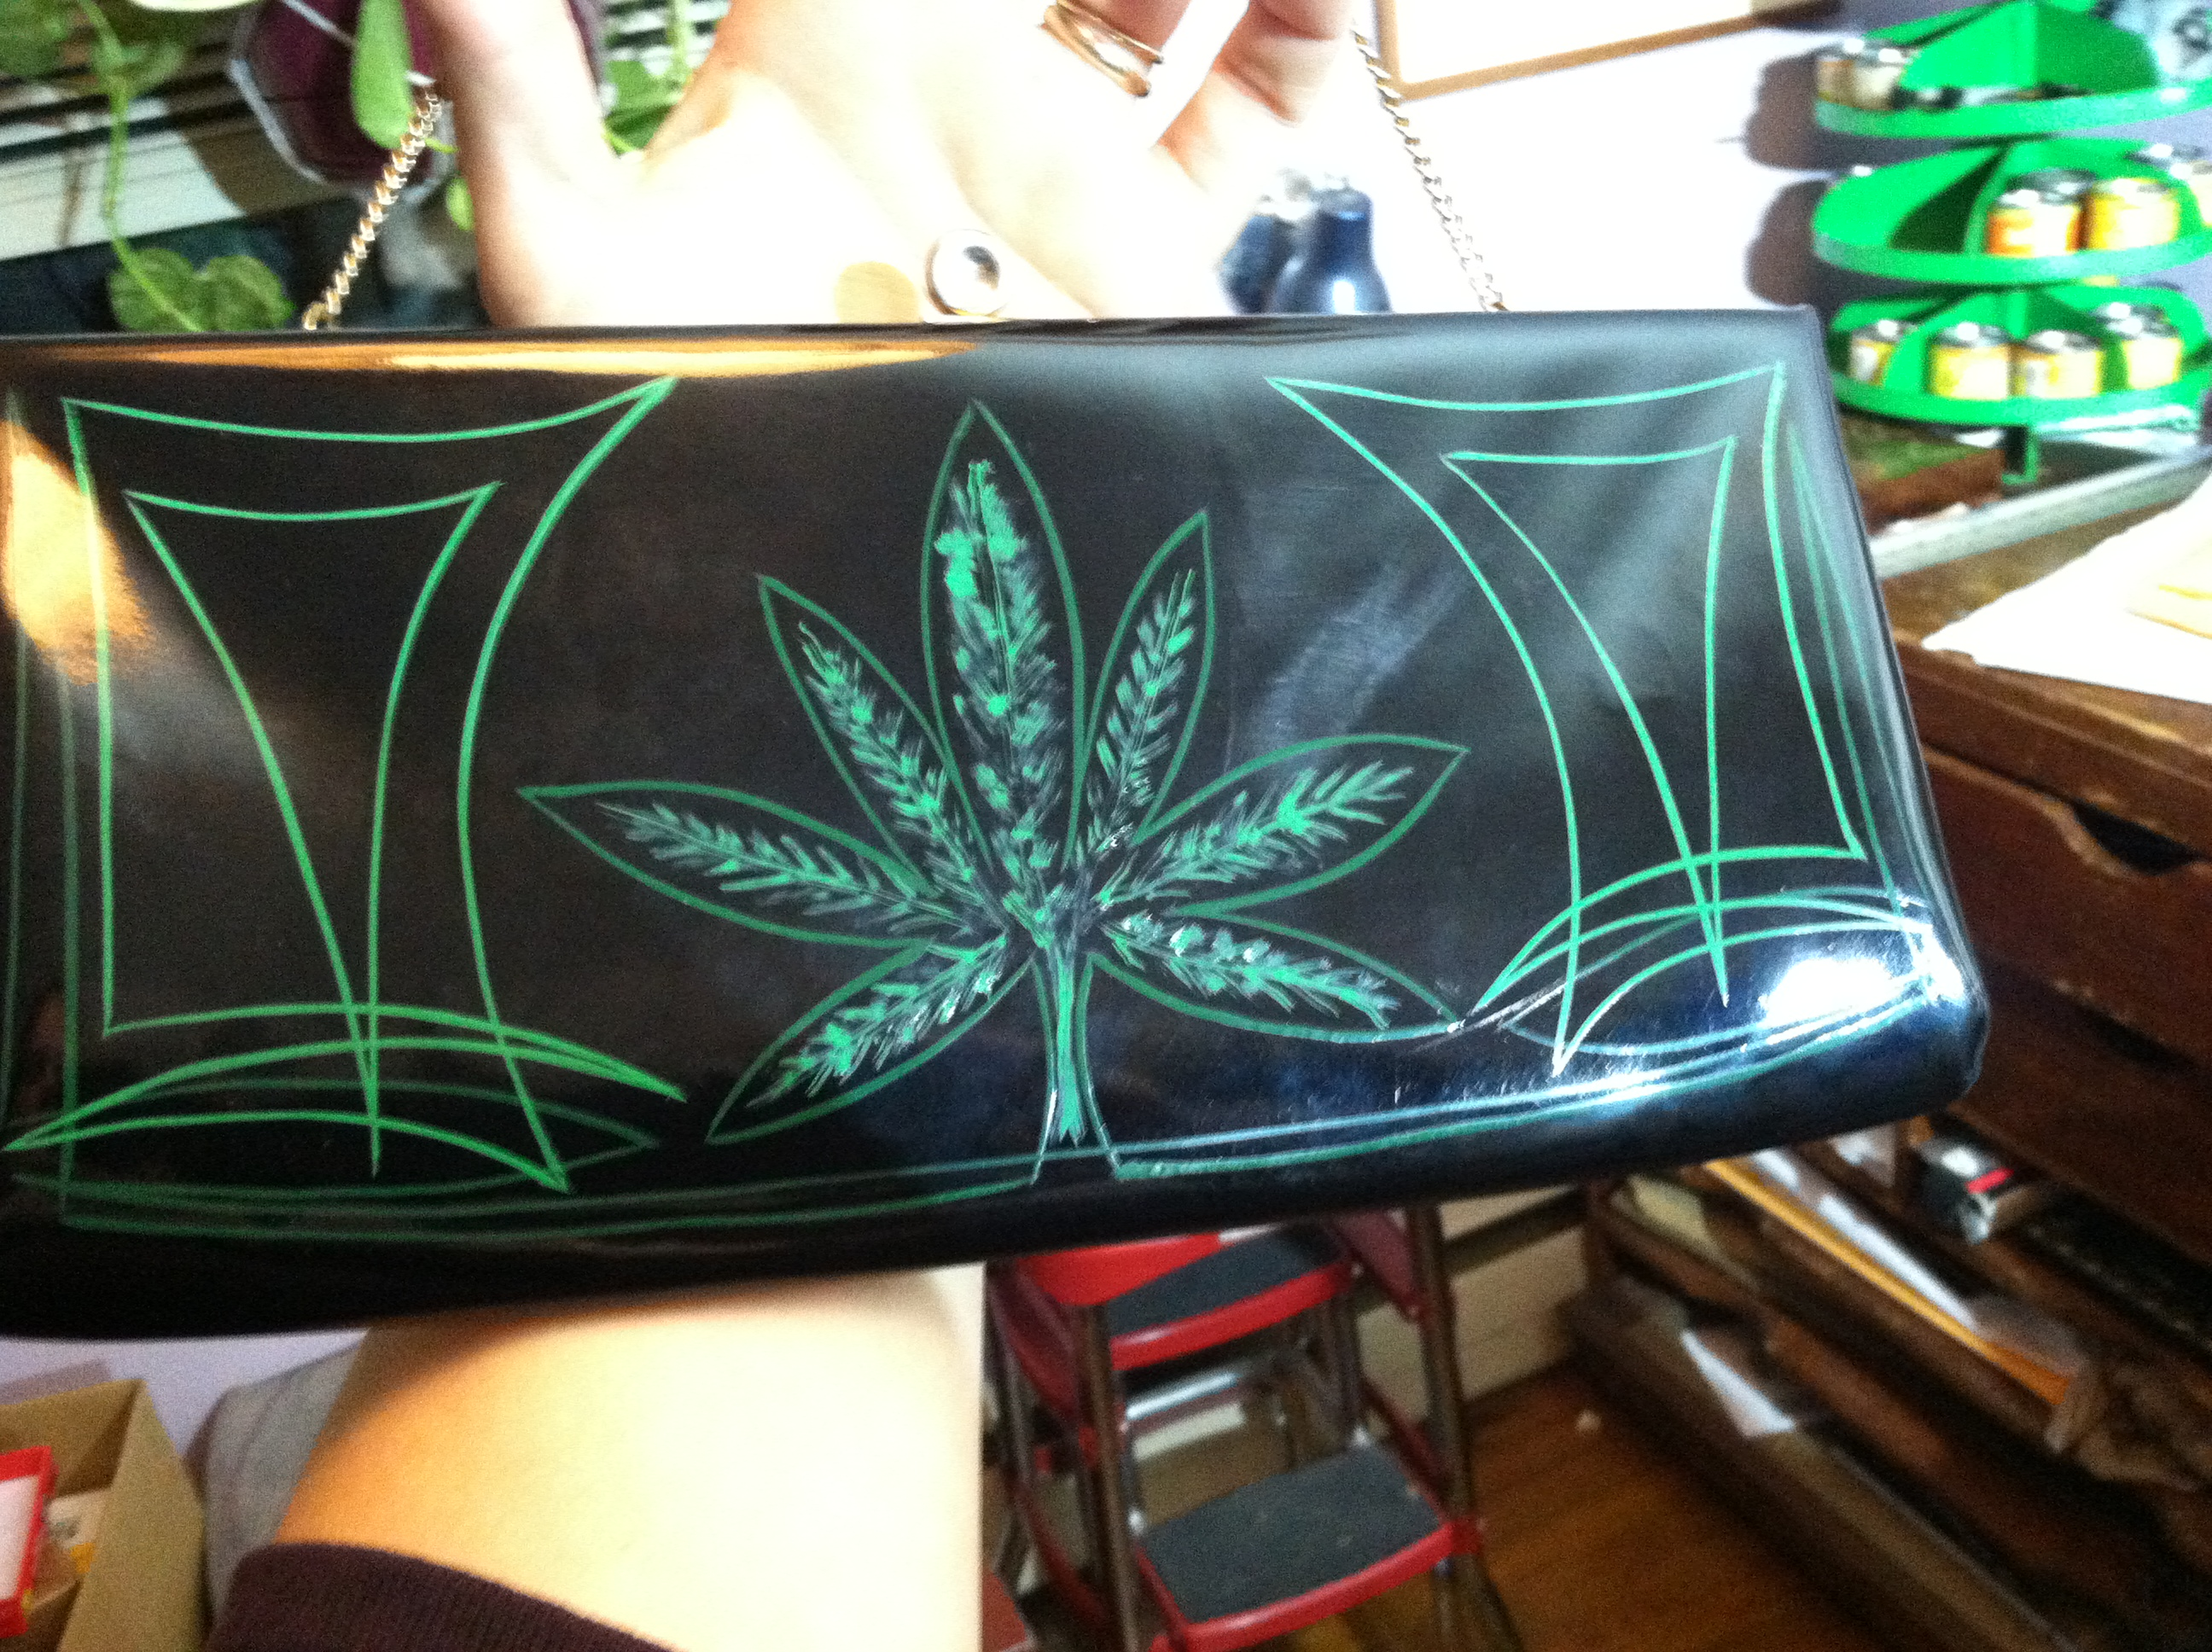 pinup, accessories, handbag, purse, clutch, patent leather, rockabilly, pinup girl, pin-striping, pinstriped, retro, psychobilly, etsy, retail, 50s, fashion, 60s, 40s, kustom kulture, norml, pot leaf